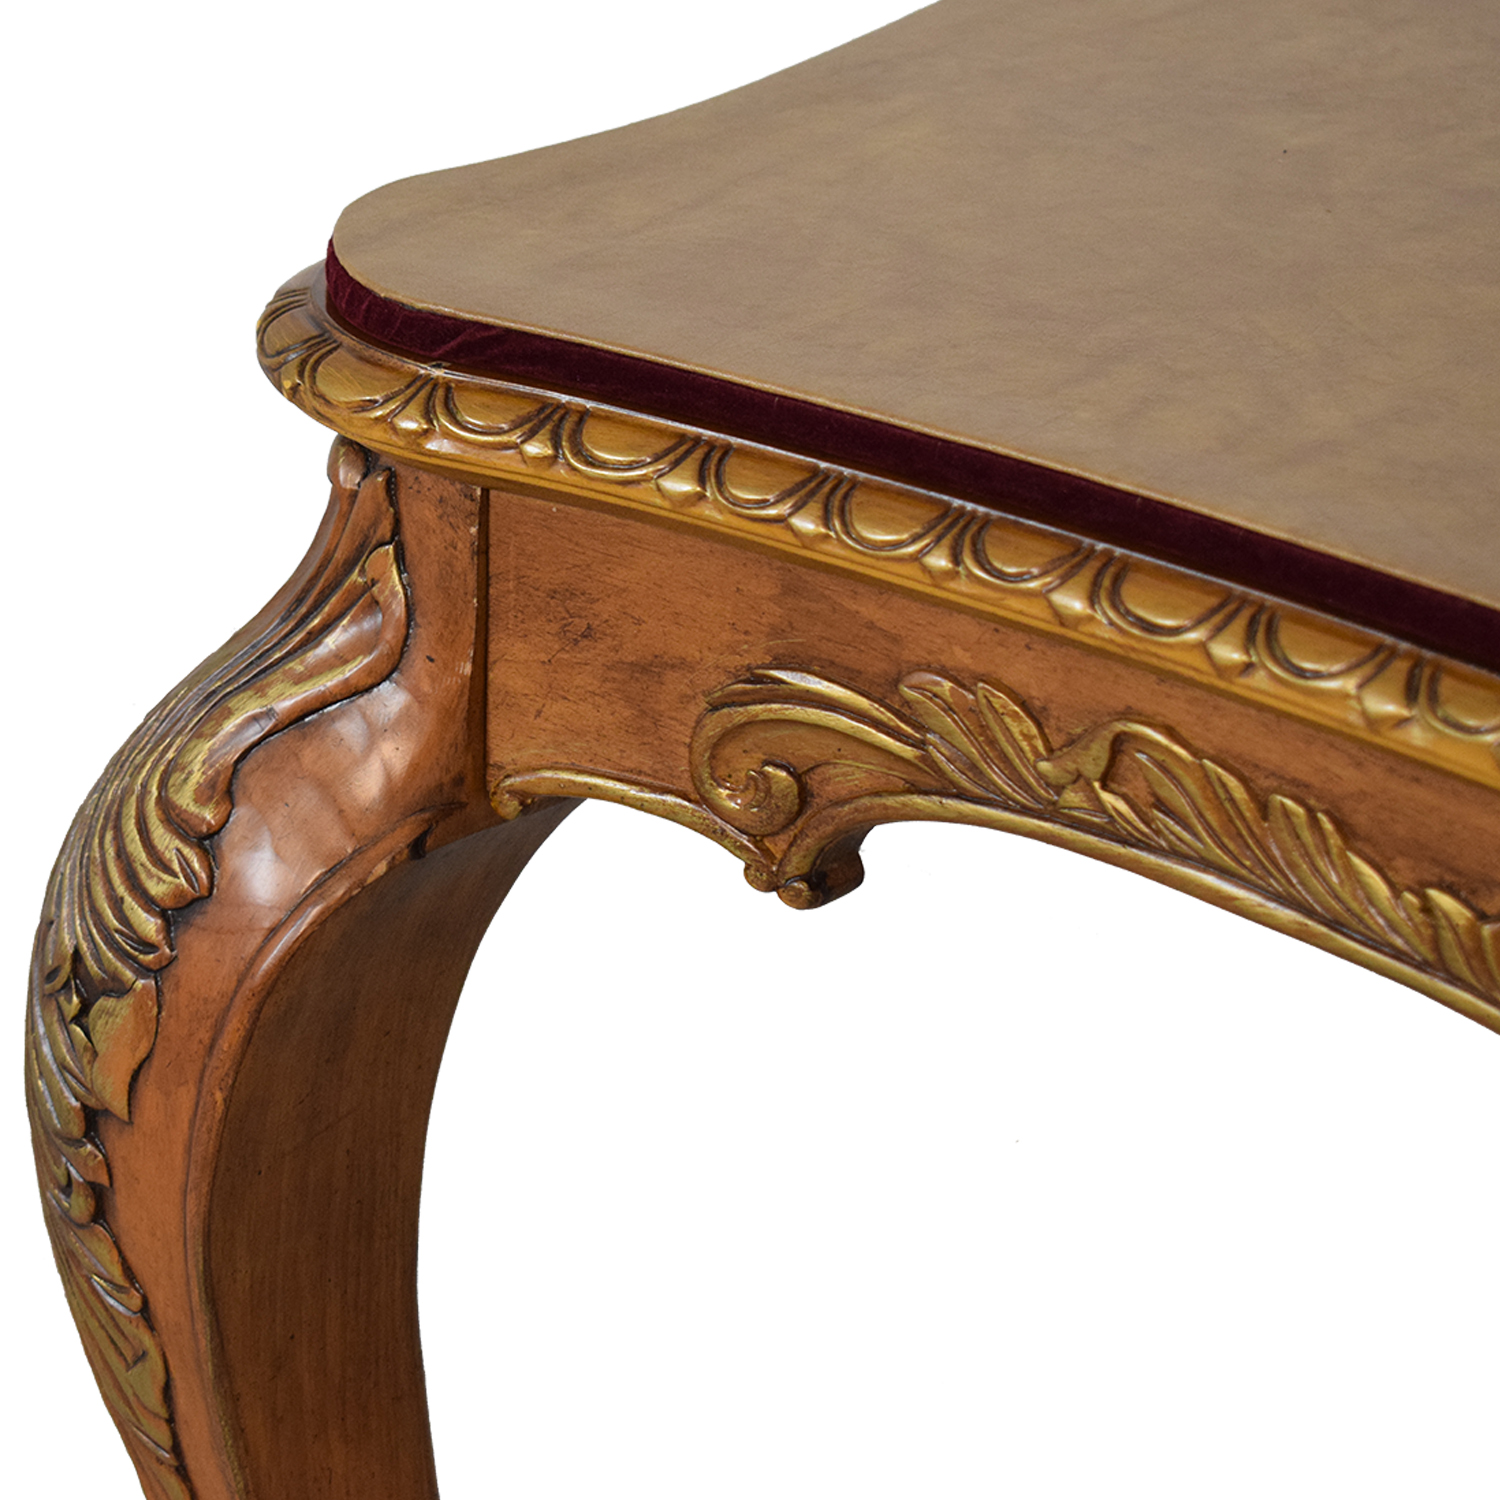 Raymour & Flanigan Raymour & Flanigan Extendable Dining Table for sale